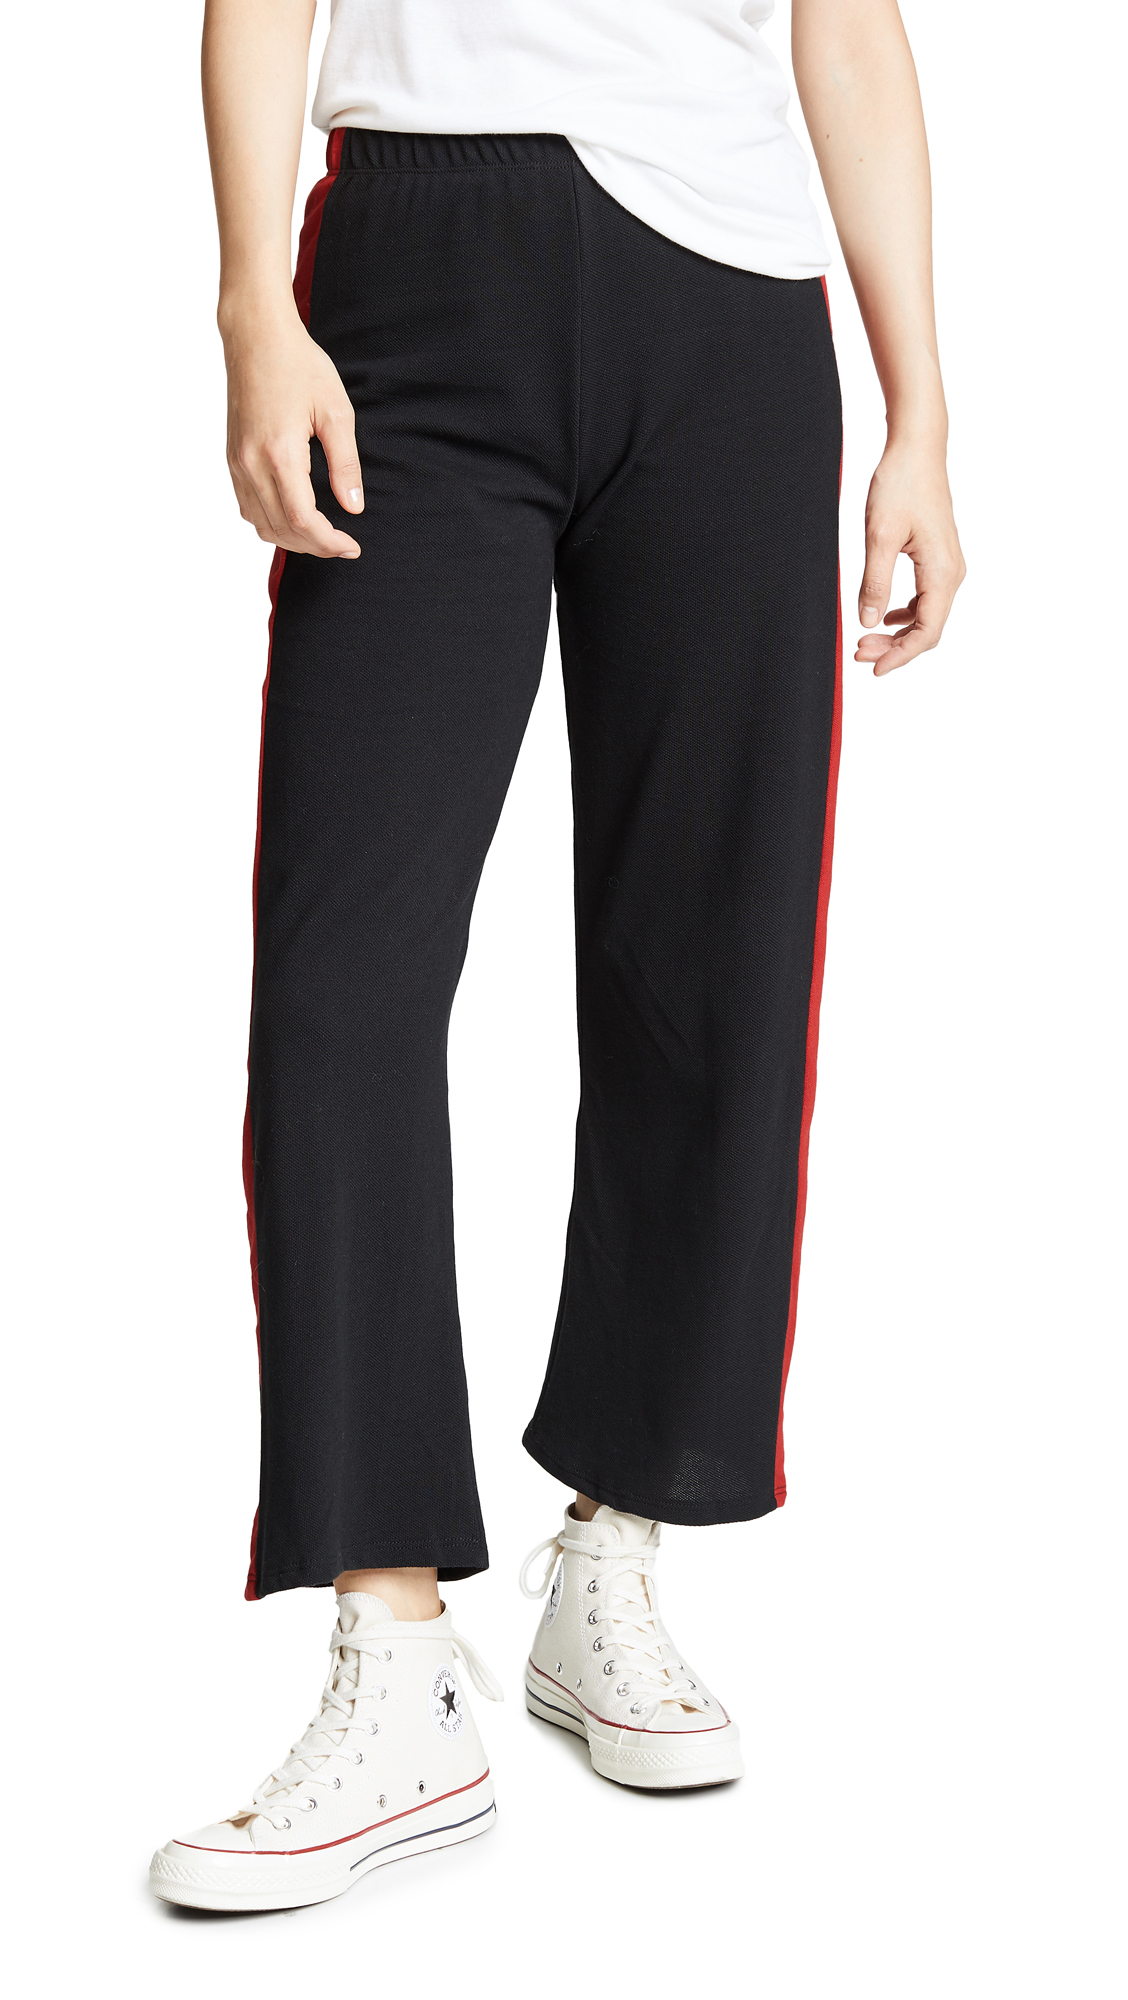 LIANA CLOTHING The Clyde Pants in Black